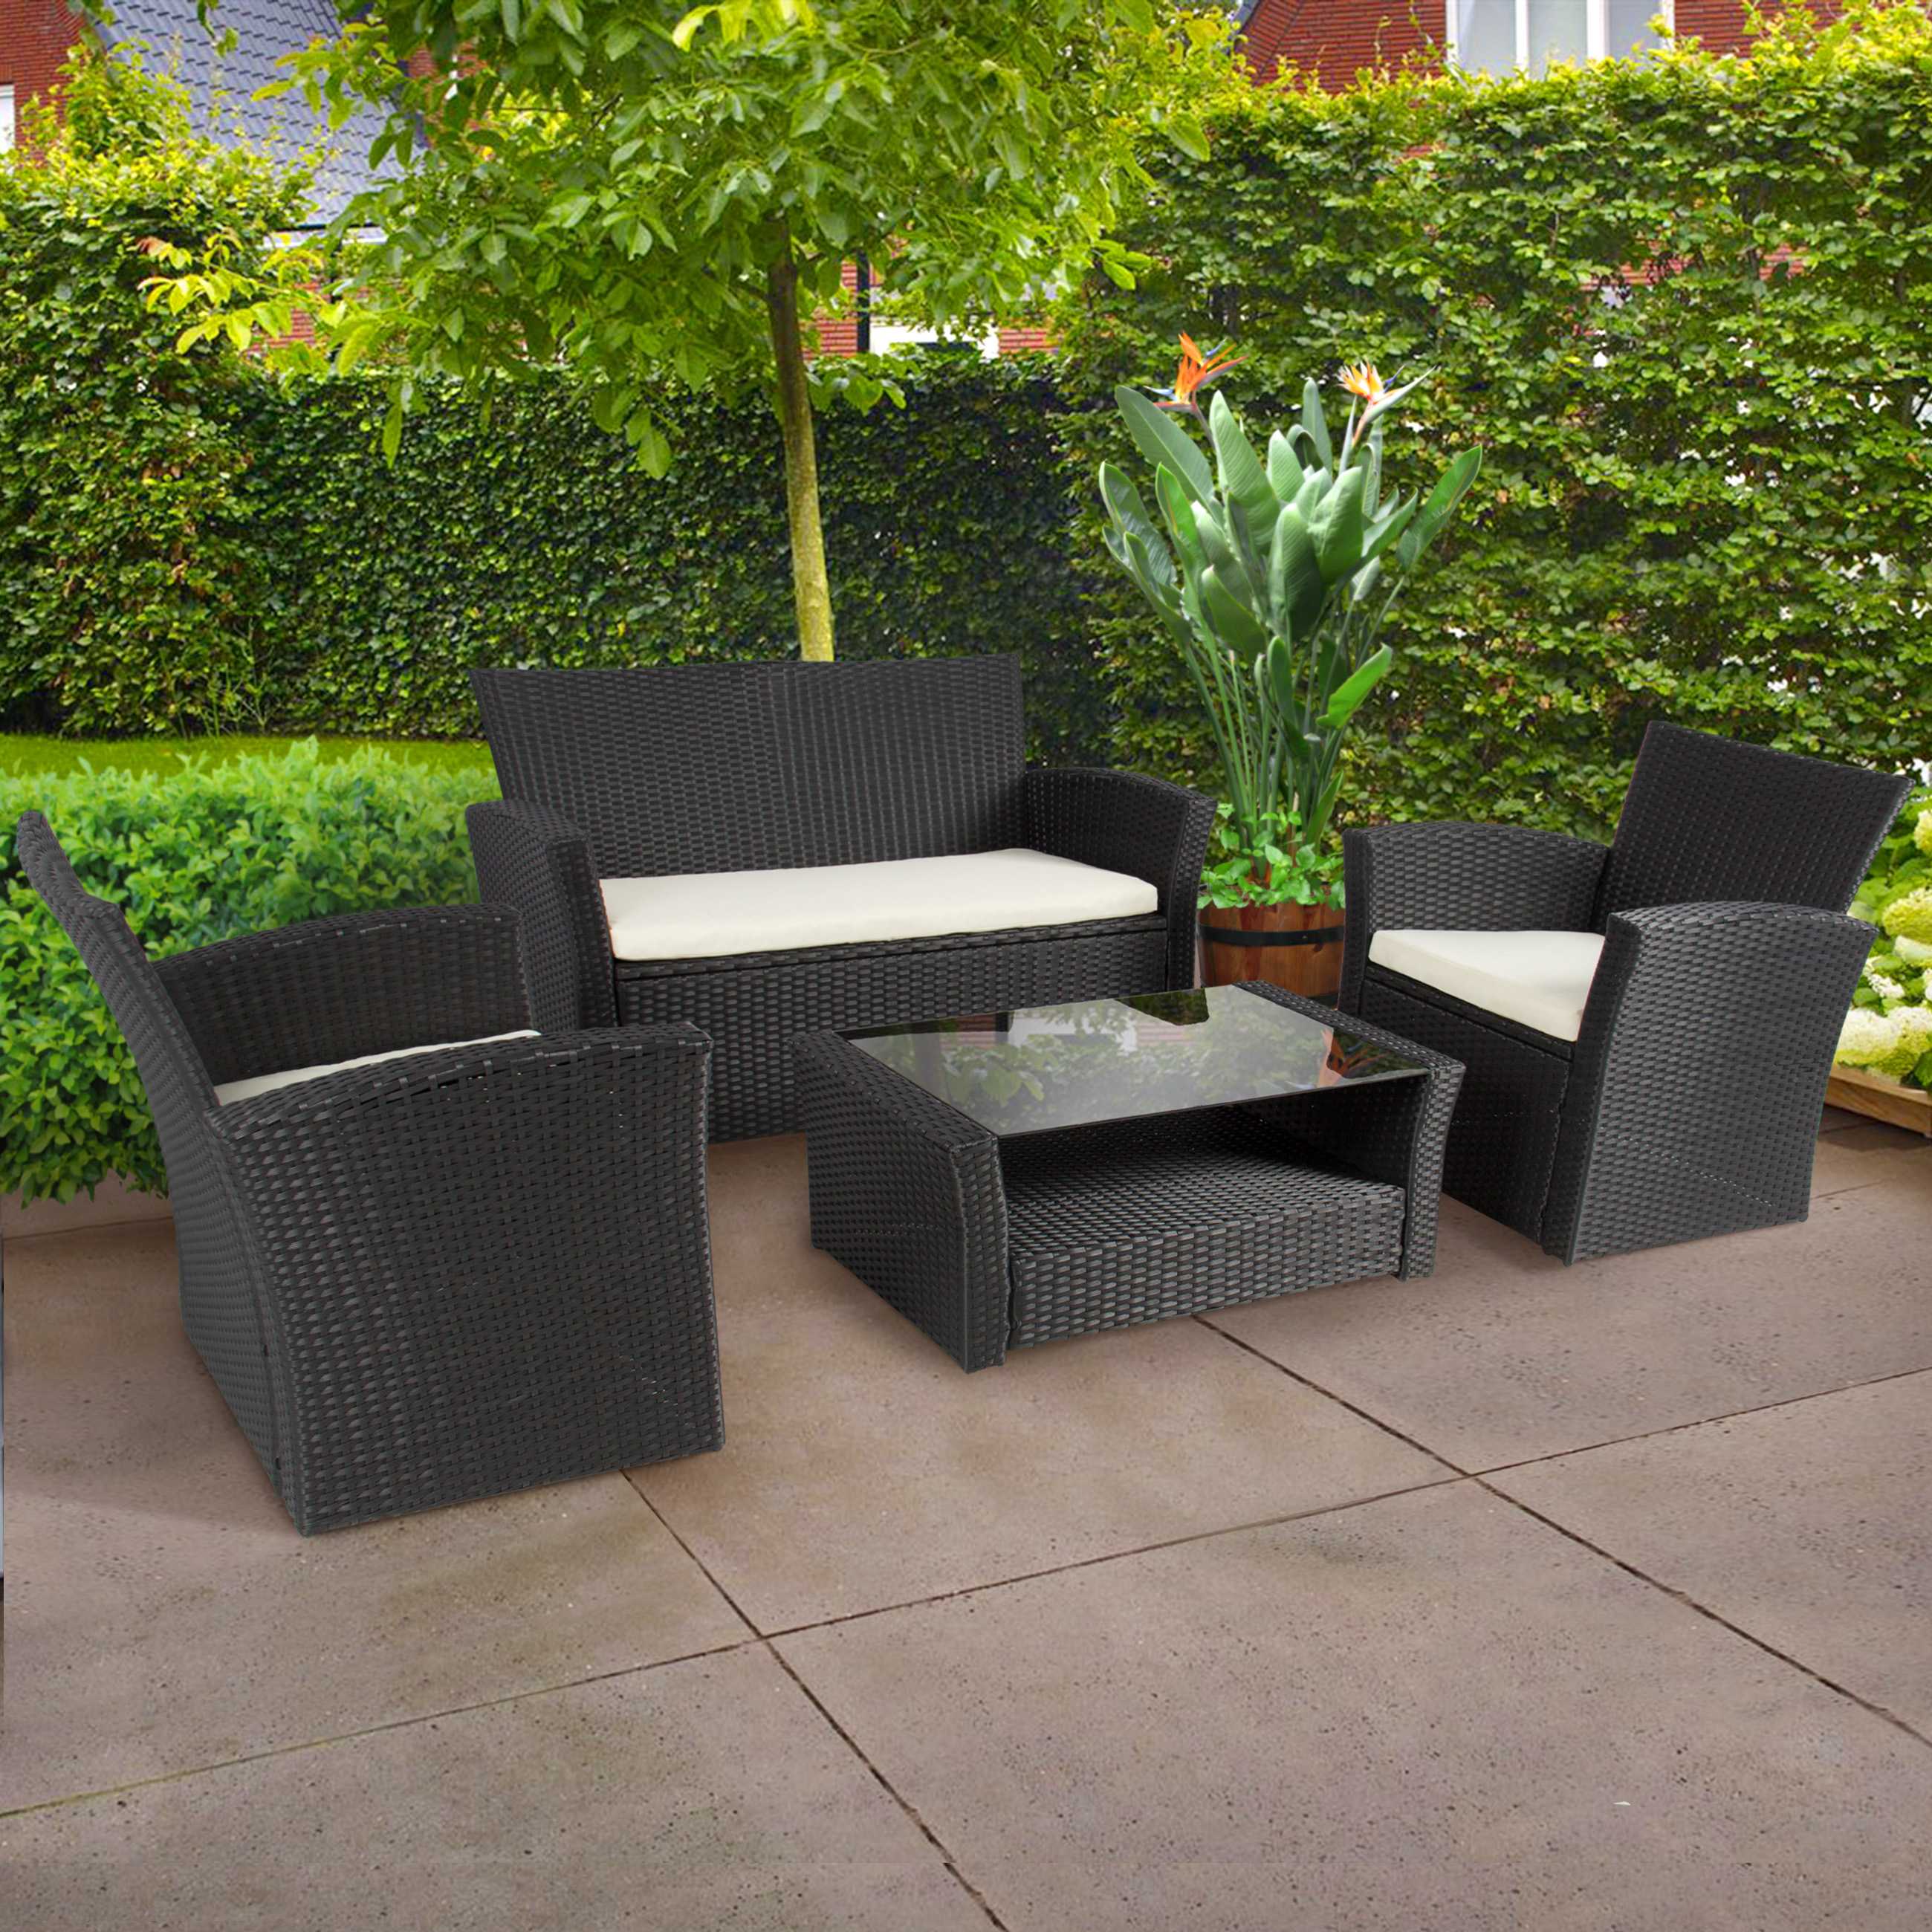 cheap rattan garden furniture sets 4pc outdoor patio garden furniture wicker rattan sofa set black - LFYMLKV